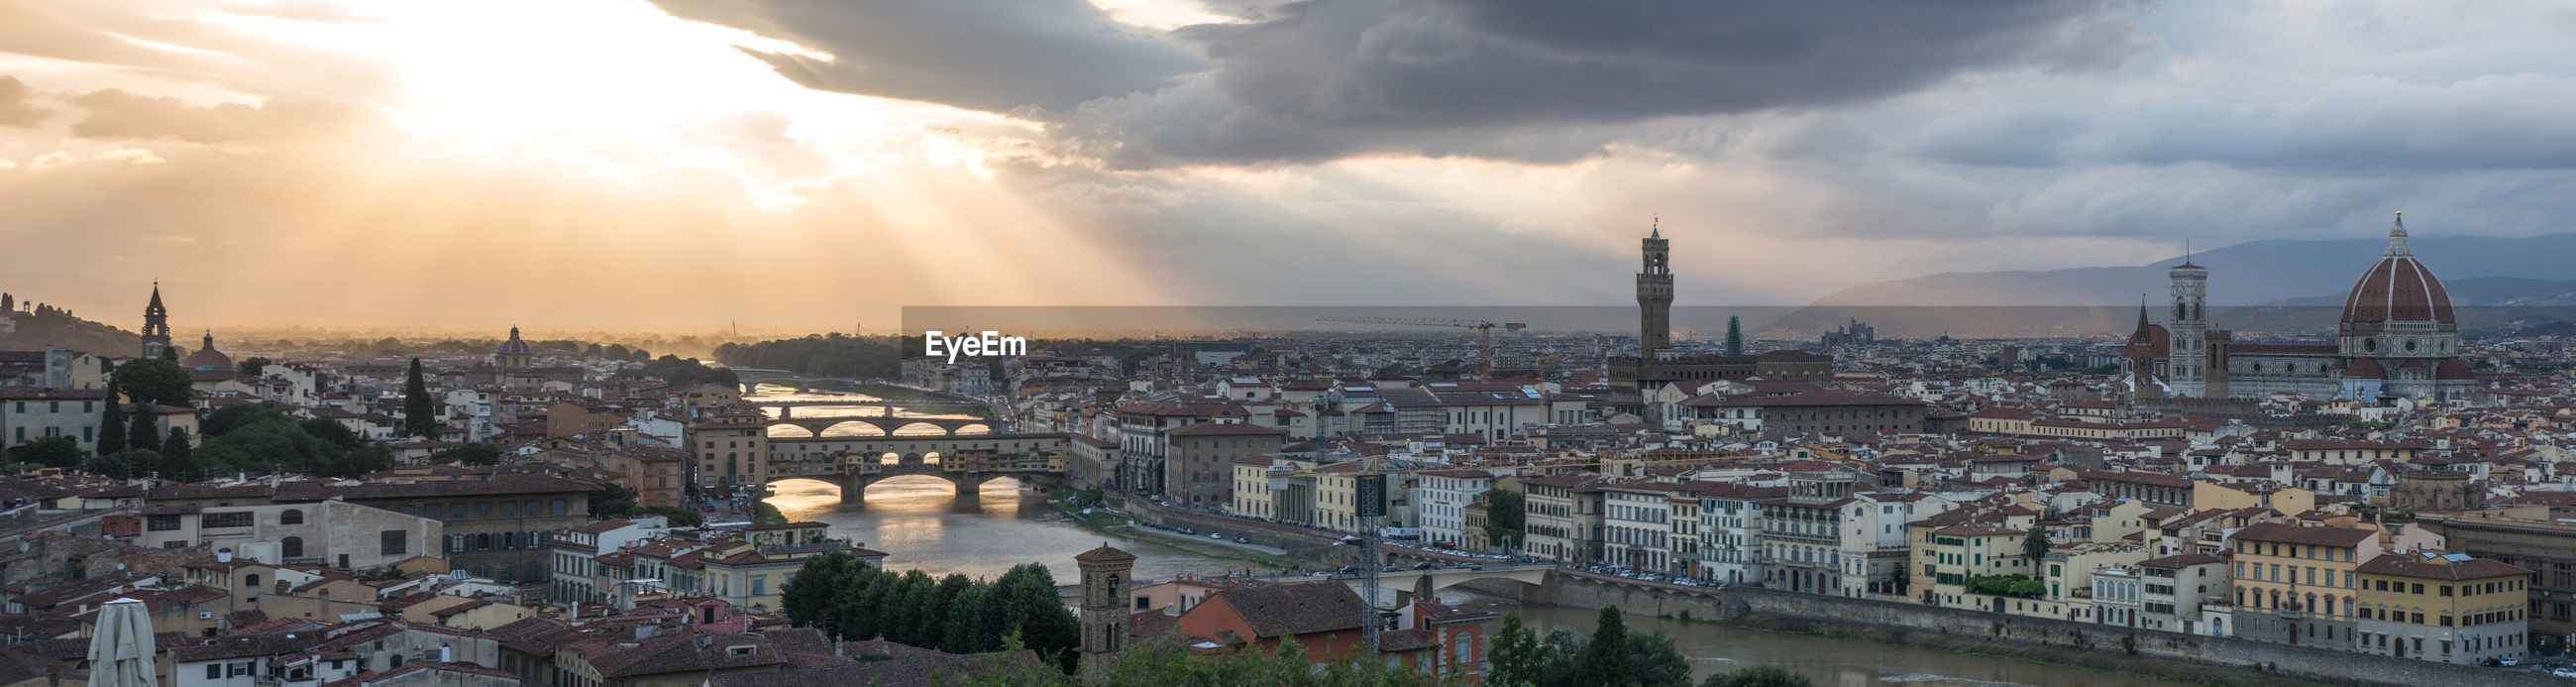 Panoramic shot of arno river amidst cityscape against sky during sunset